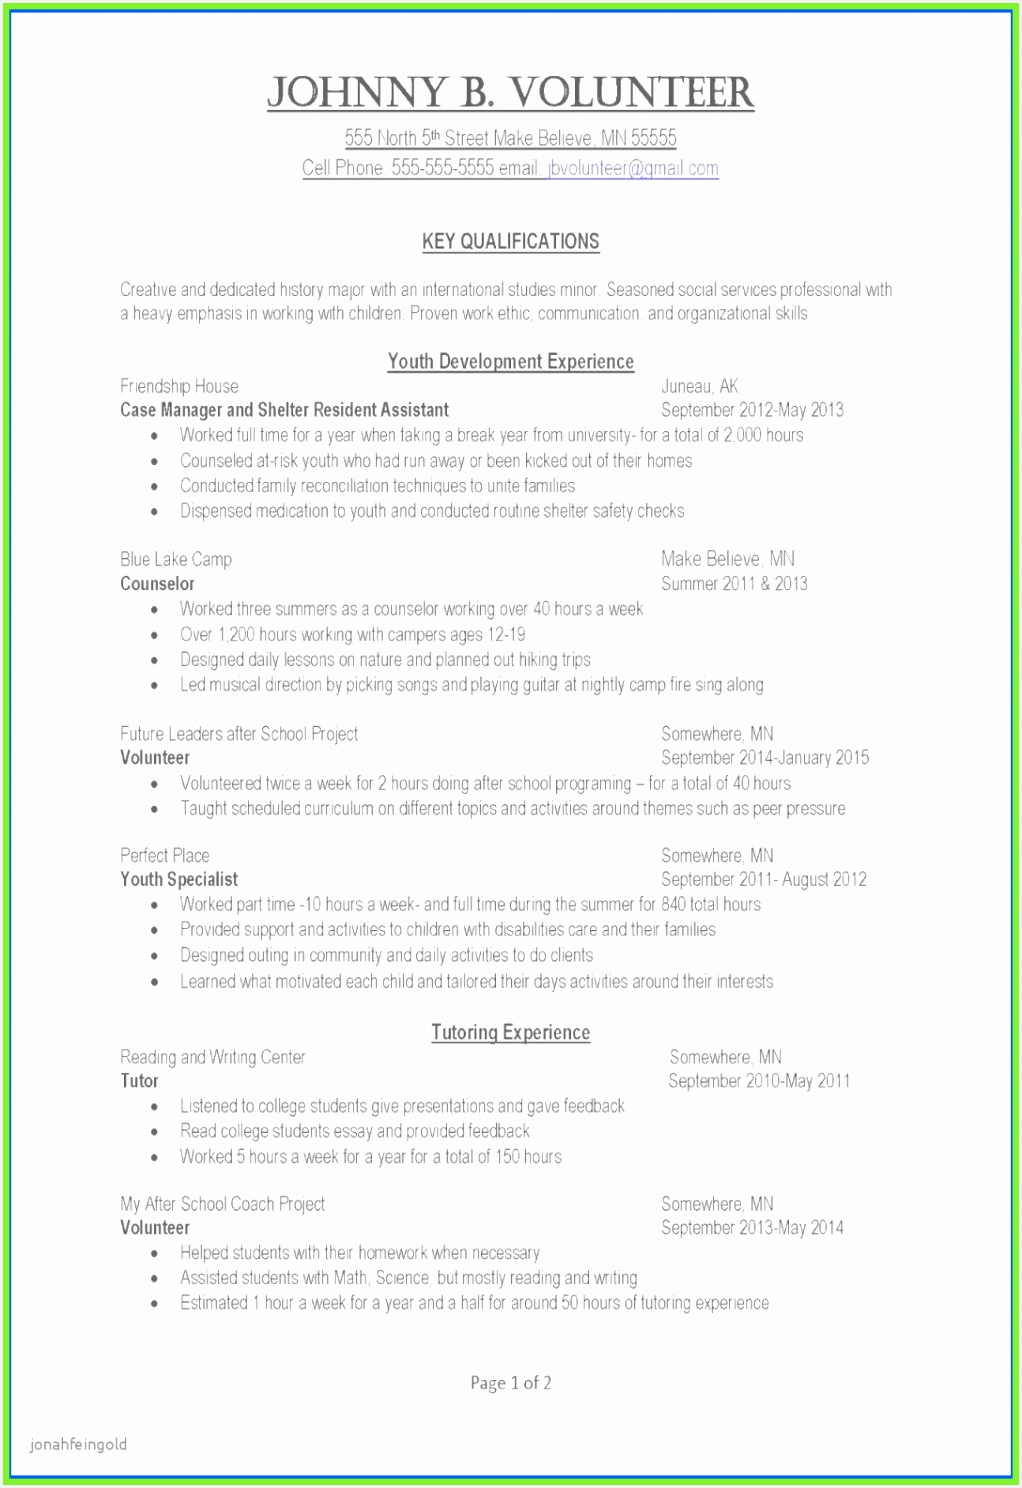 International social Worker Sample Resume Bnede Beautiful 16 Inspirational Student Cover Letter Template Of International social Worker Sample Resume Dfkzk Inspirational Sample Resumes Inspirational What is Resume Fresh Bsw Resume 0d